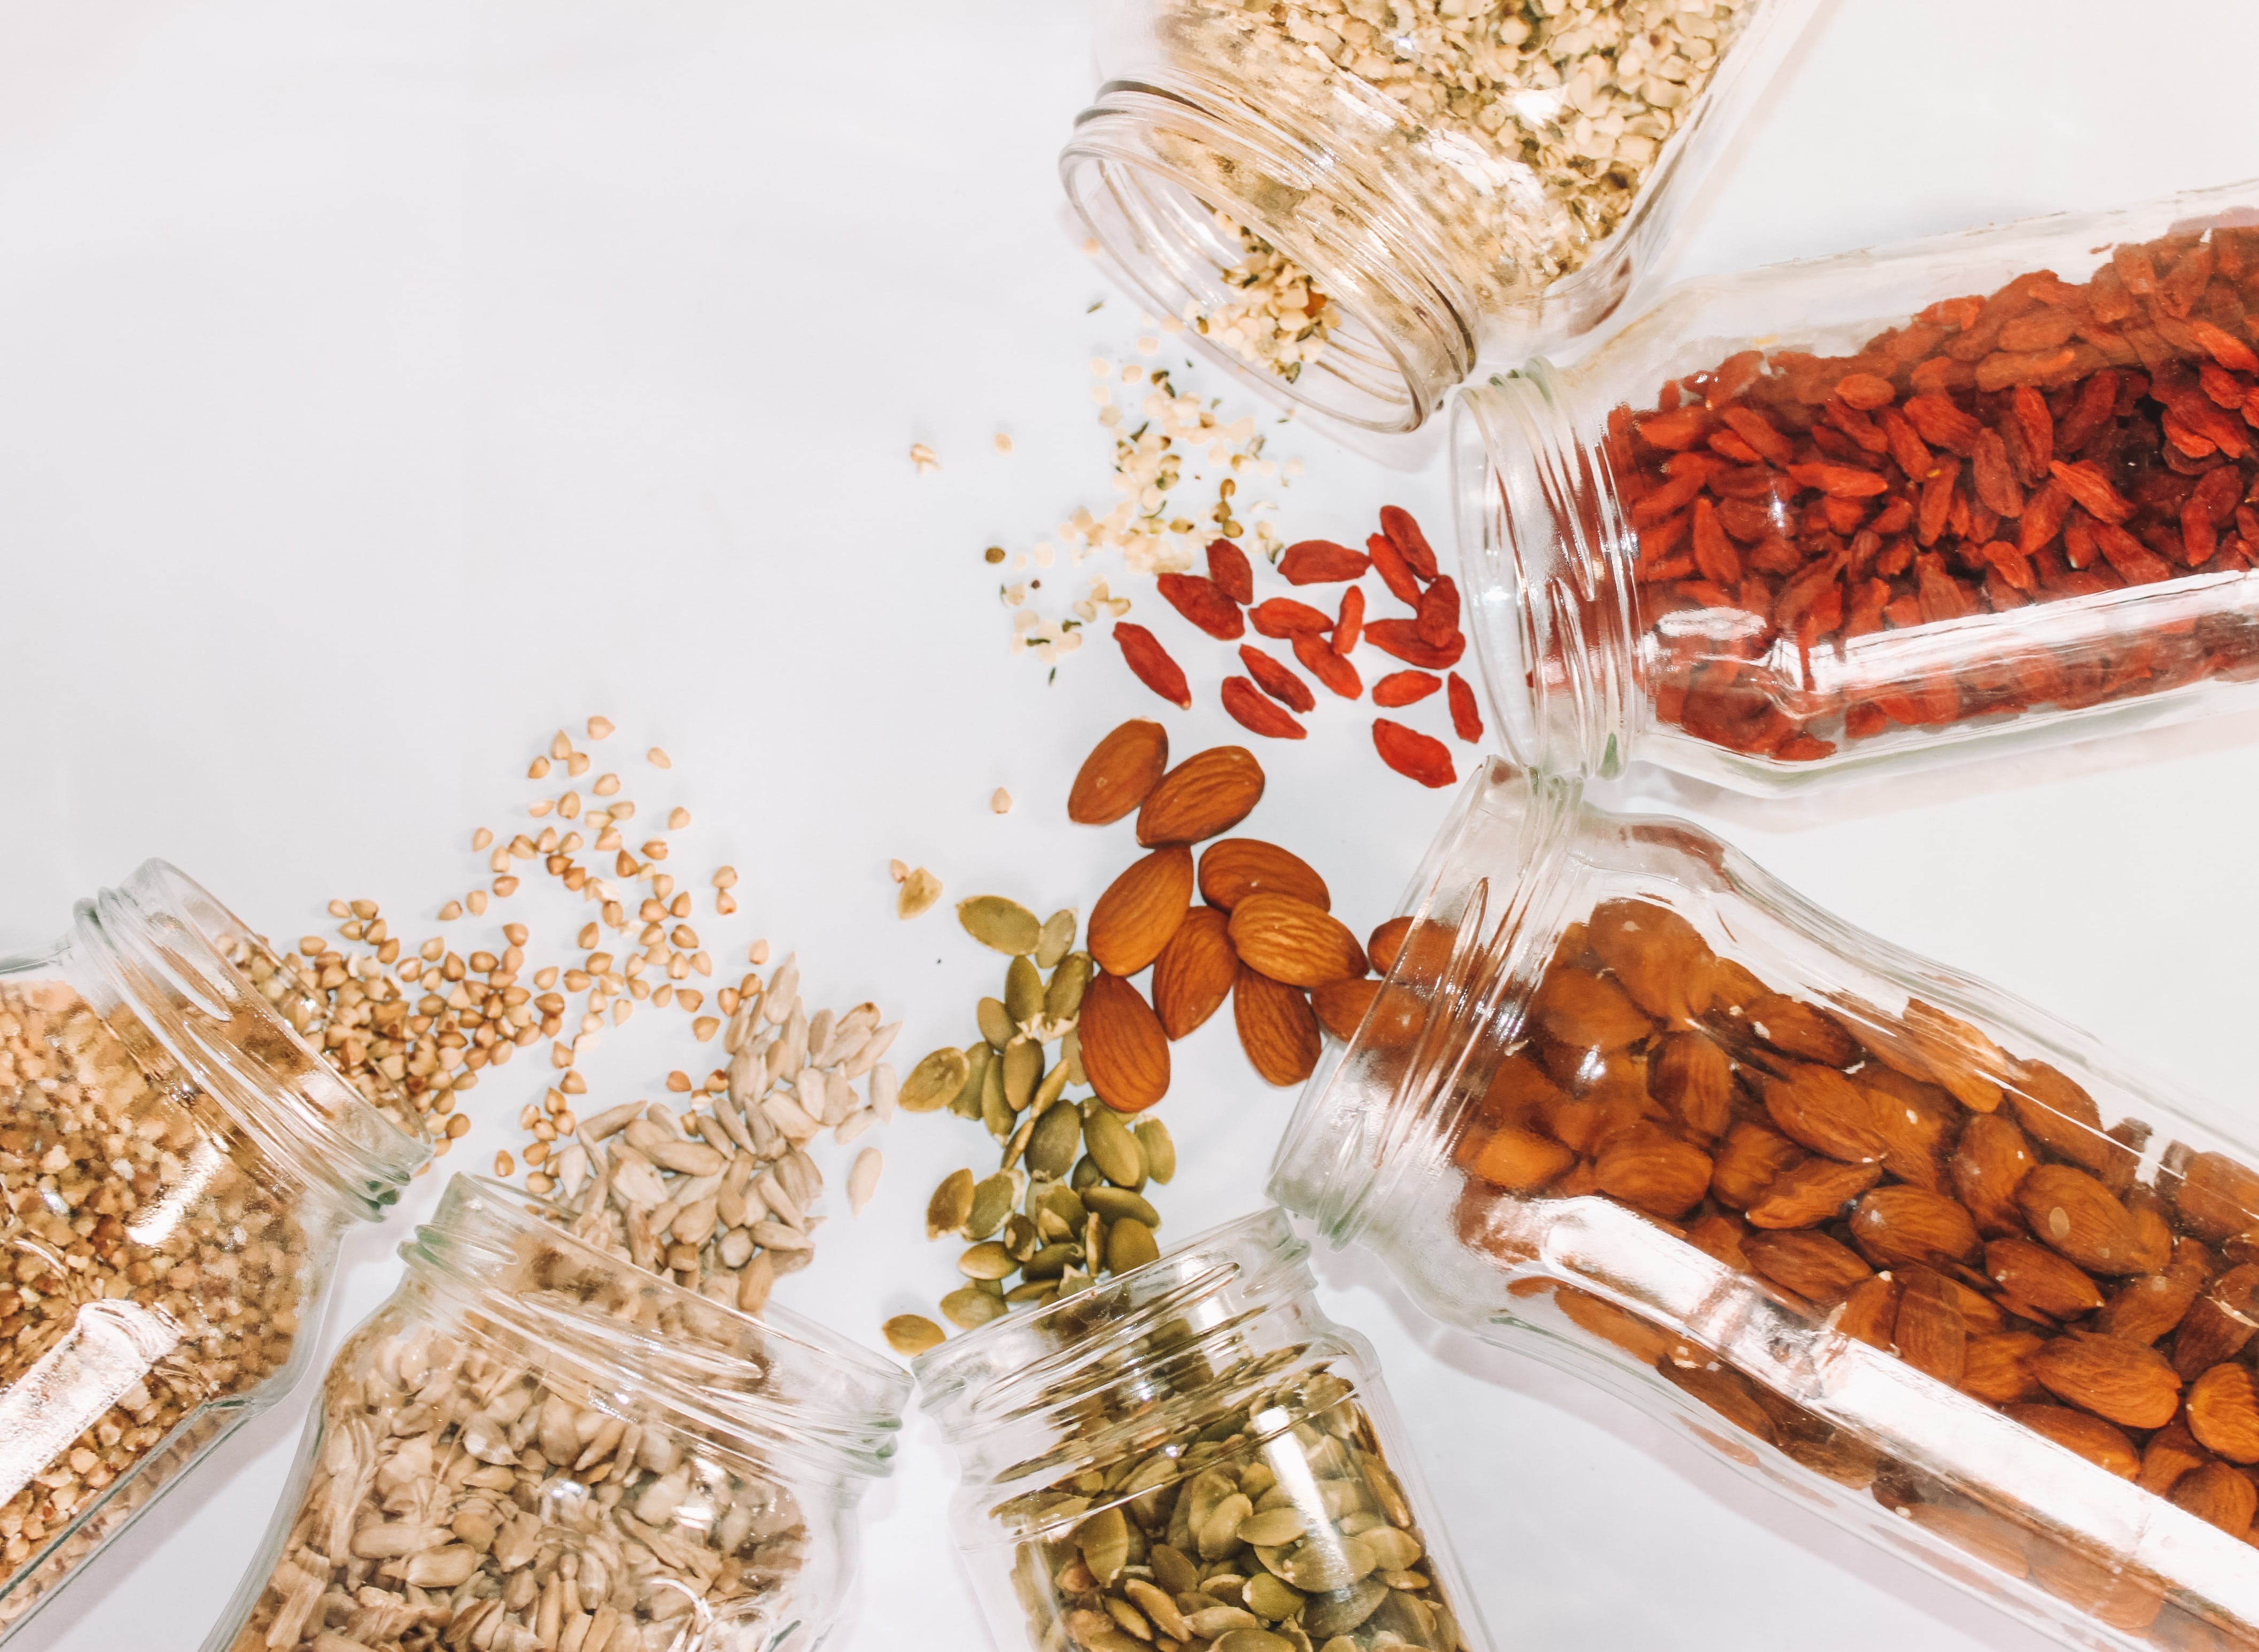 Glass jars filled with almonds, gogi berries, pepita seeds, sunflower seeds and many more oatmeal toppings.